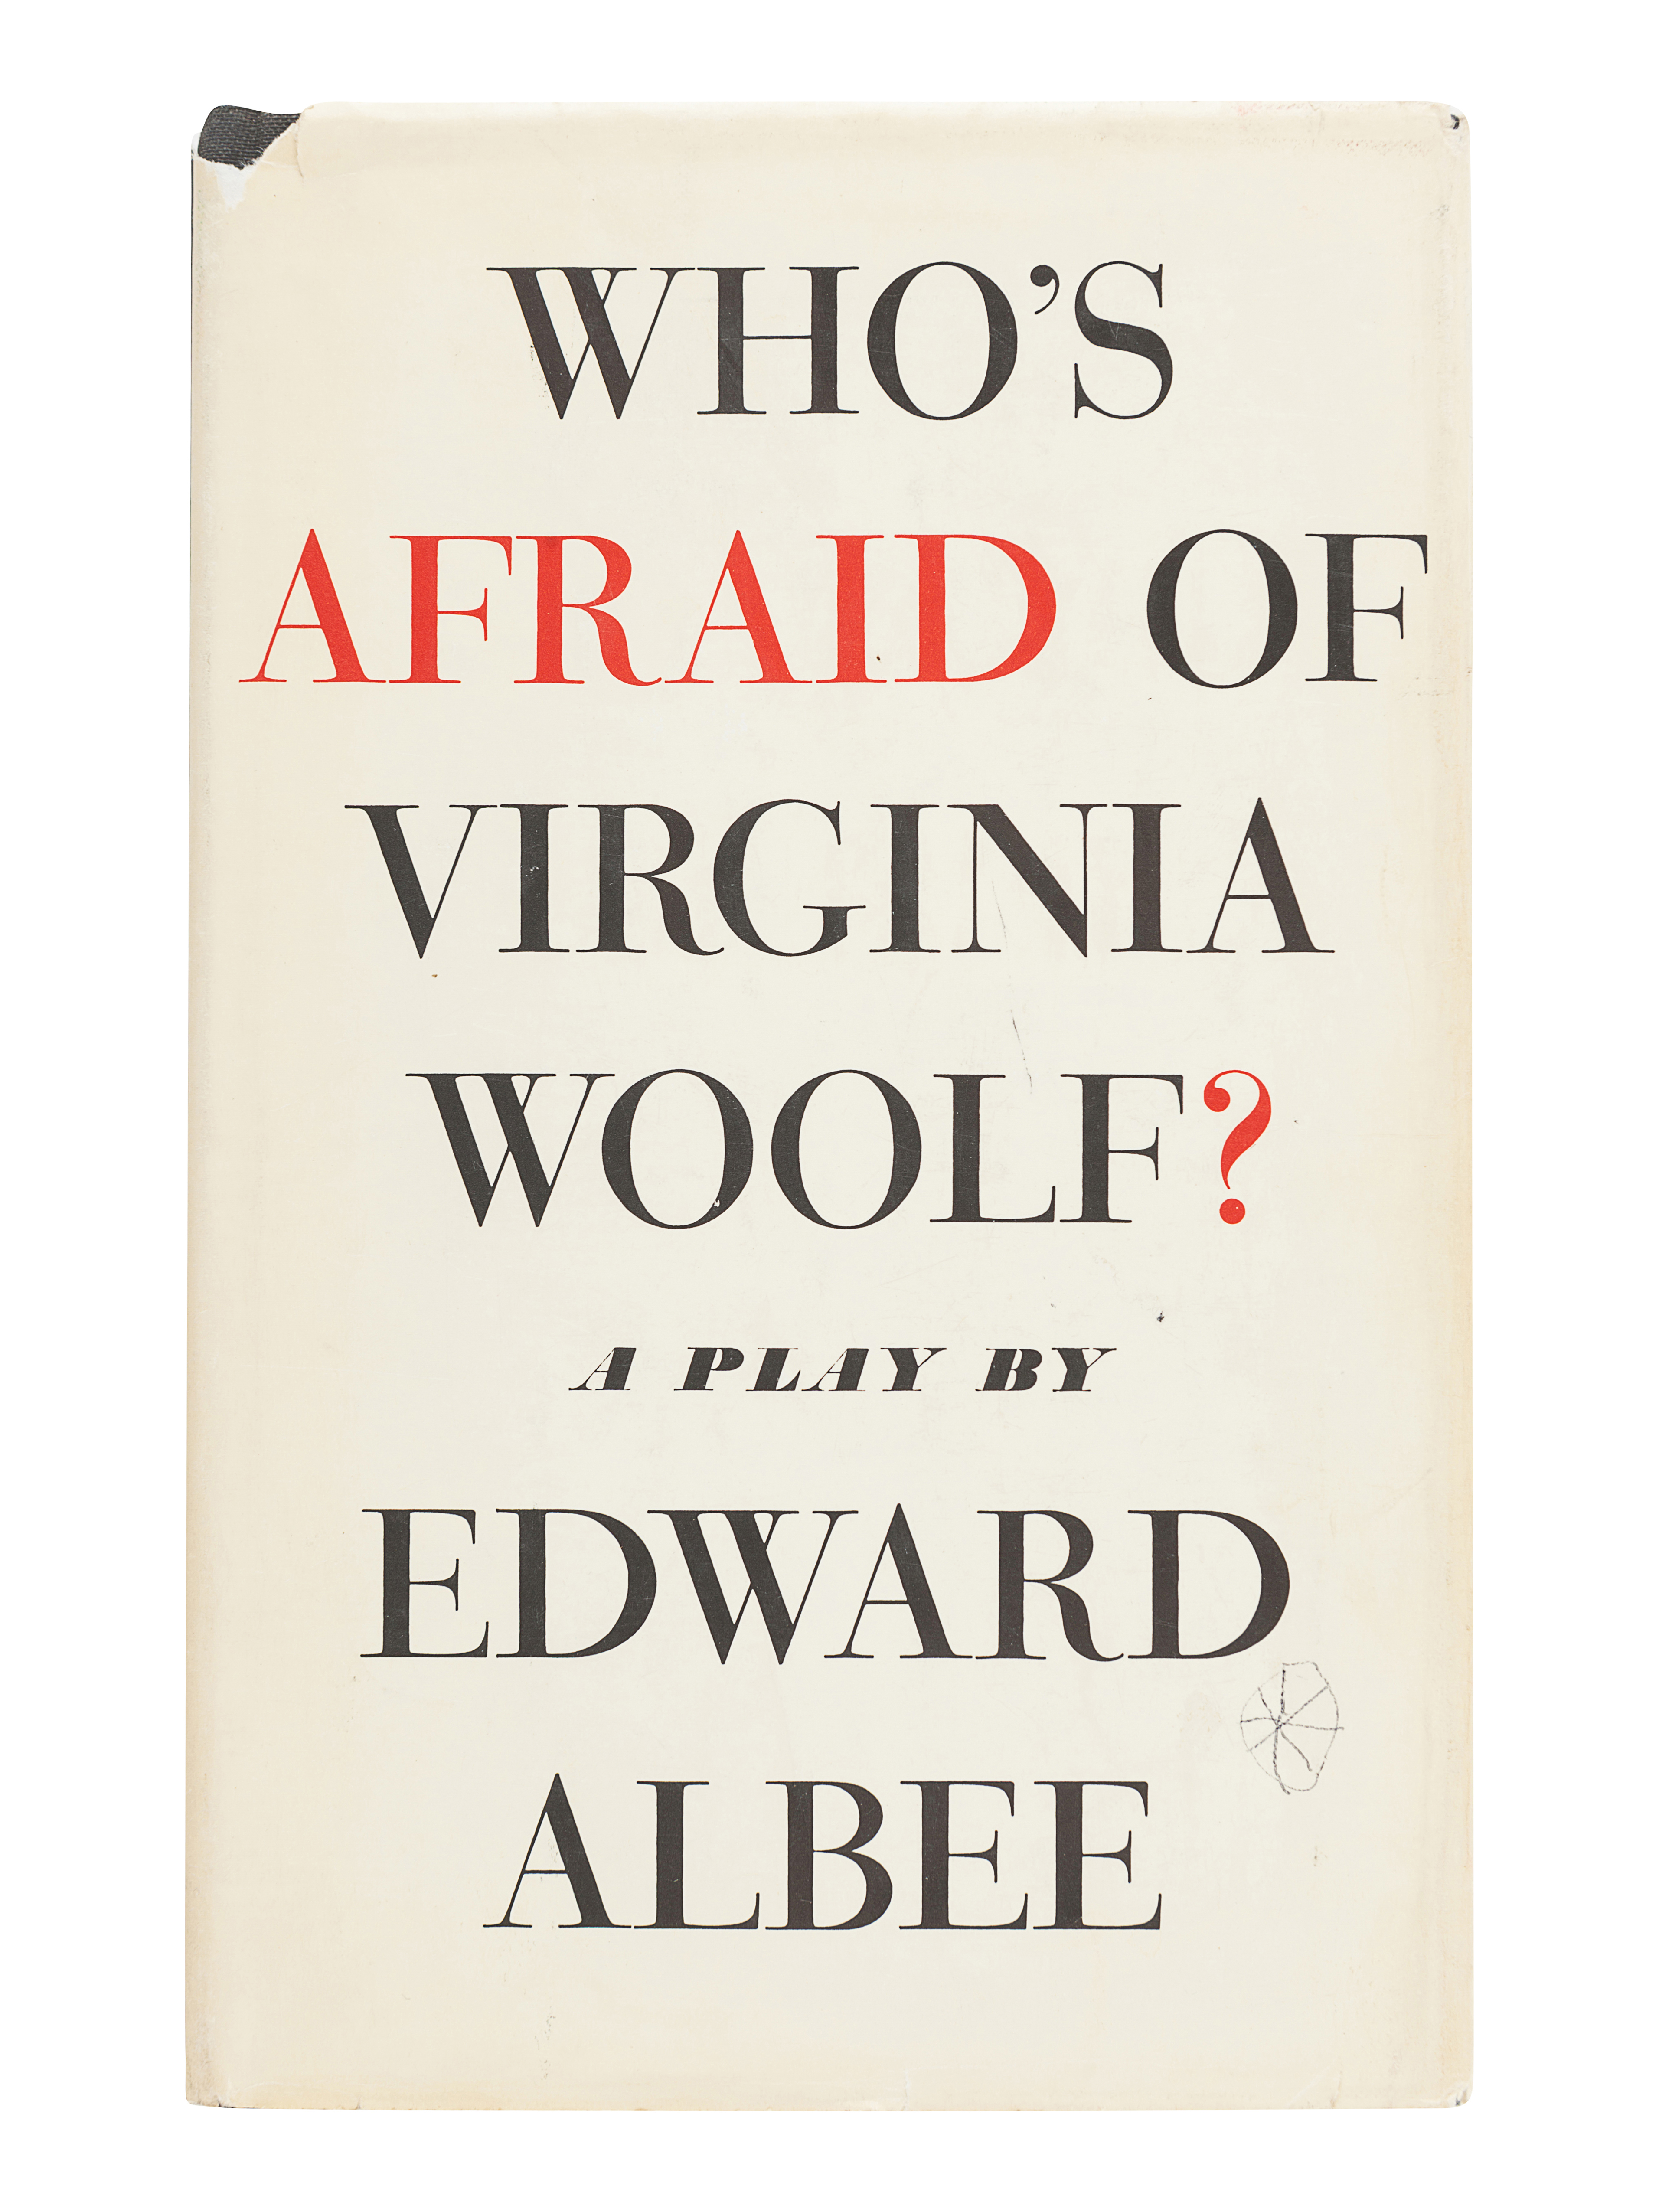 ALBEE, Edward (1928-2016). Who's Afraid of Virginia Woolf? New York: Atheneum, 1962. - Image 2 of 3